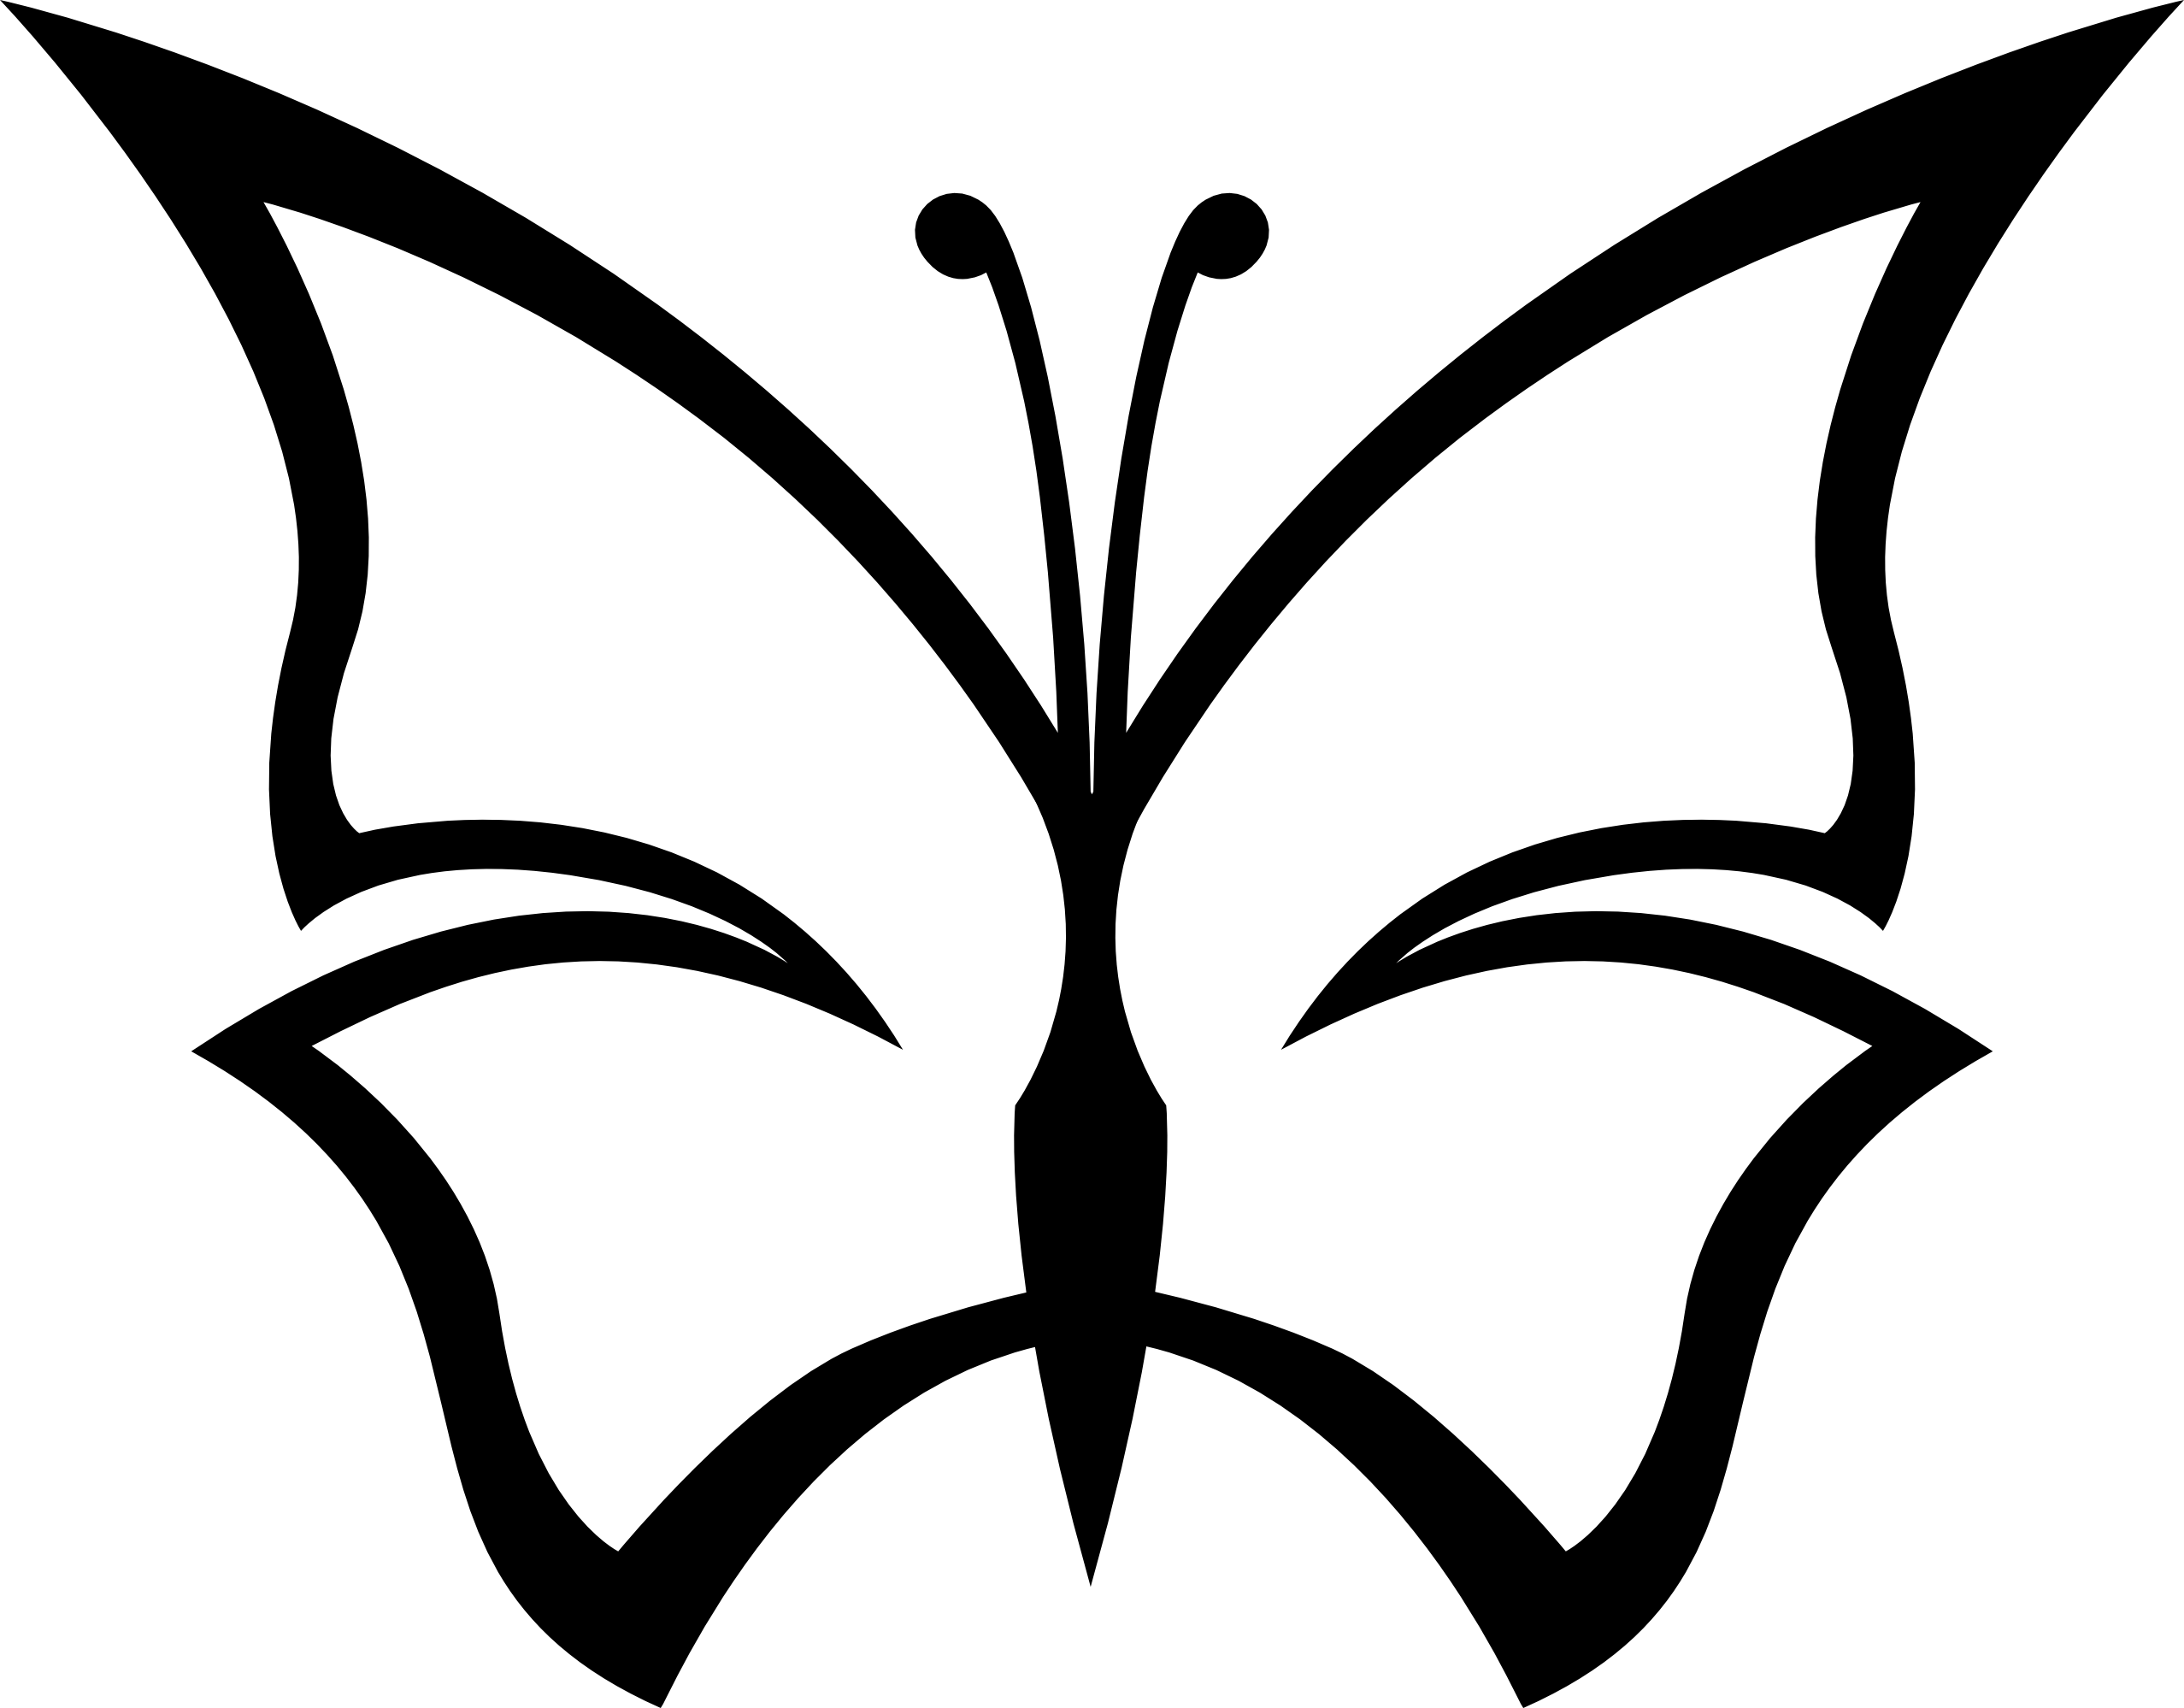 lemmling Abstract butterfly 1 black white line art ... - ClipArt ...